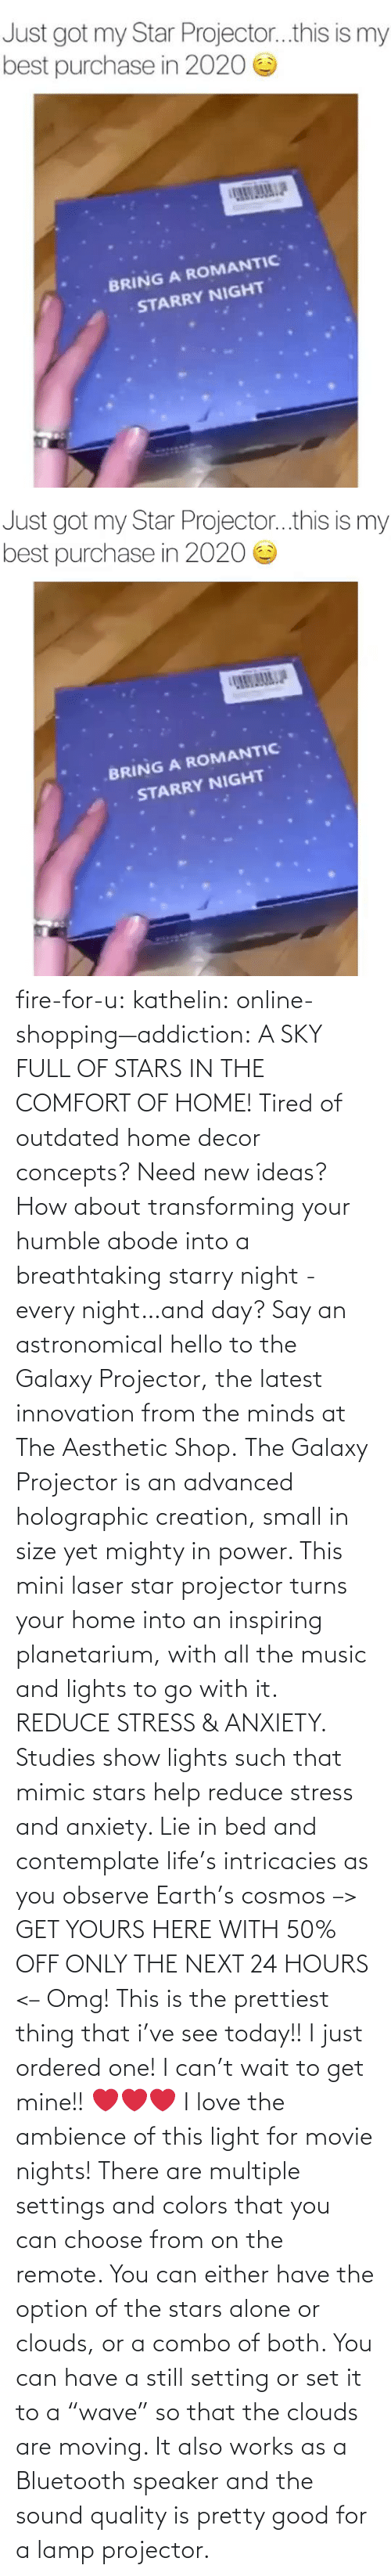 "lie: fire-for-u:  kathelin: online-shopping—addiction:  A SKY FULL OF STARS IN THE COMFORT OF HOME! Tired of outdated home decor concepts? Need new ideas? How about transforming your humble abode into a breathtaking starry night - every night…and day? Say an astronomical hello to the Galaxy Projector, the latest innovation from the minds at The Aesthetic Shop. The Galaxy Projector is an advanced holographic creation, small in size yet mighty in power. This mini laser star projector turns your home into an inspiring planetarium, with all the music and lights to go with it. REDUCE STRESS & ANXIETY. Studies show lights such that mimic stars help reduce stress and anxiety. Lie in bed and contemplate life's intricacies as you observe Earth's cosmos  –> GET YOURS HERE WITH 50% OFF ONLY THE NEXT 24 HOURS <–   Omg! This is the prettiest thing that i've see today!! I just ordered one! I can't wait to get mine!! ❤️️❤️️❤️️  I love the ambience of this light for movie nights! There are multiple settings and colors that you can choose from on the remote. You can either have the option of the stars alone or clouds, or a combo of both. You can have a still setting or set it to a ""wave"" so that the clouds are moving. It also works as a Bluetooth speaker and the sound quality is pretty good for a lamp projector."